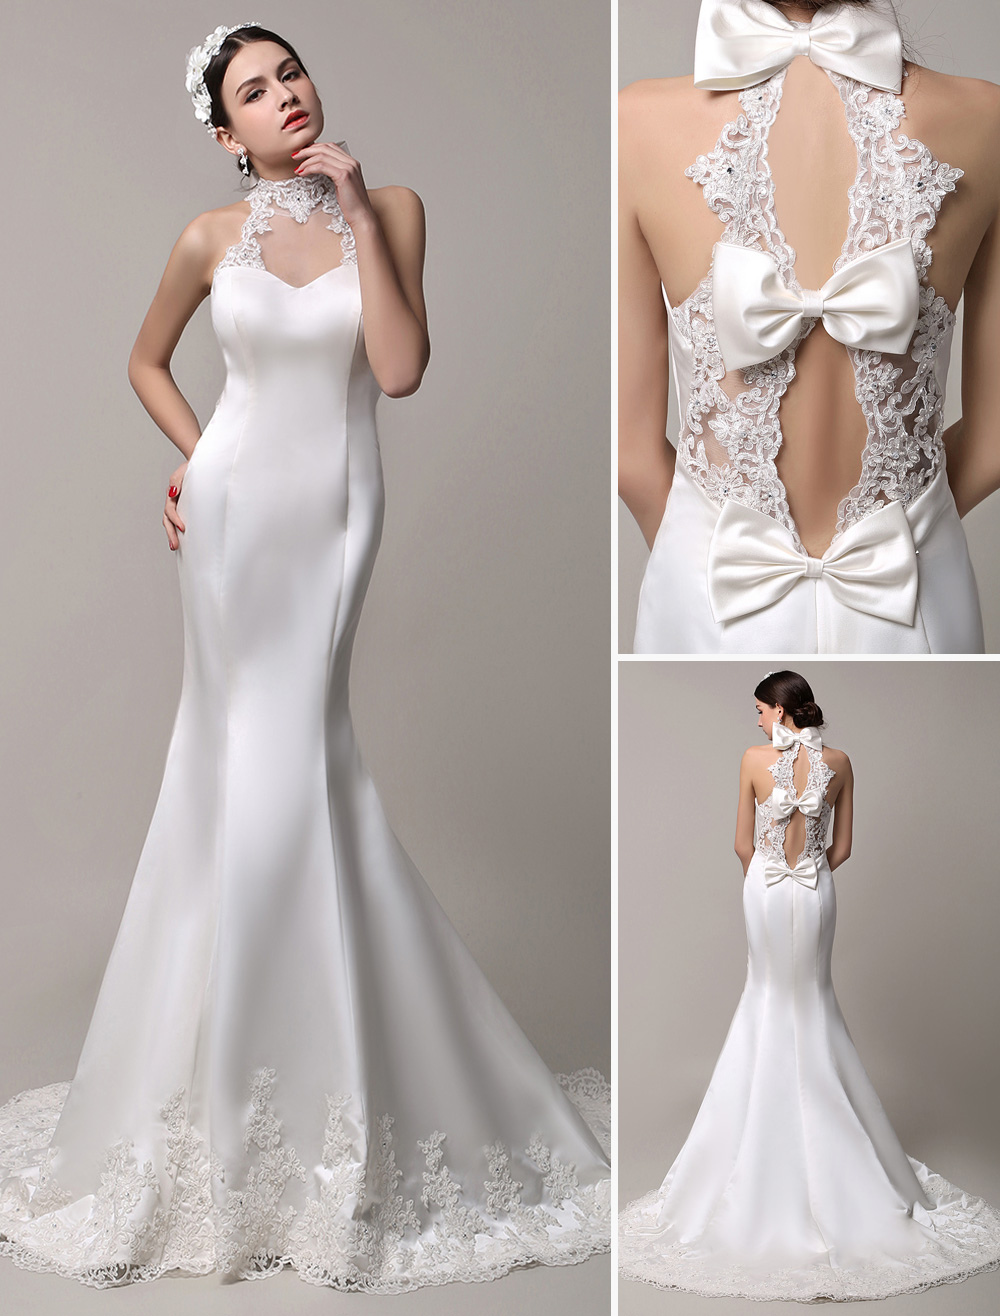 Stunning High Neck Mermaid Style Bridal Gown with Sheer Lace Back Milanoo